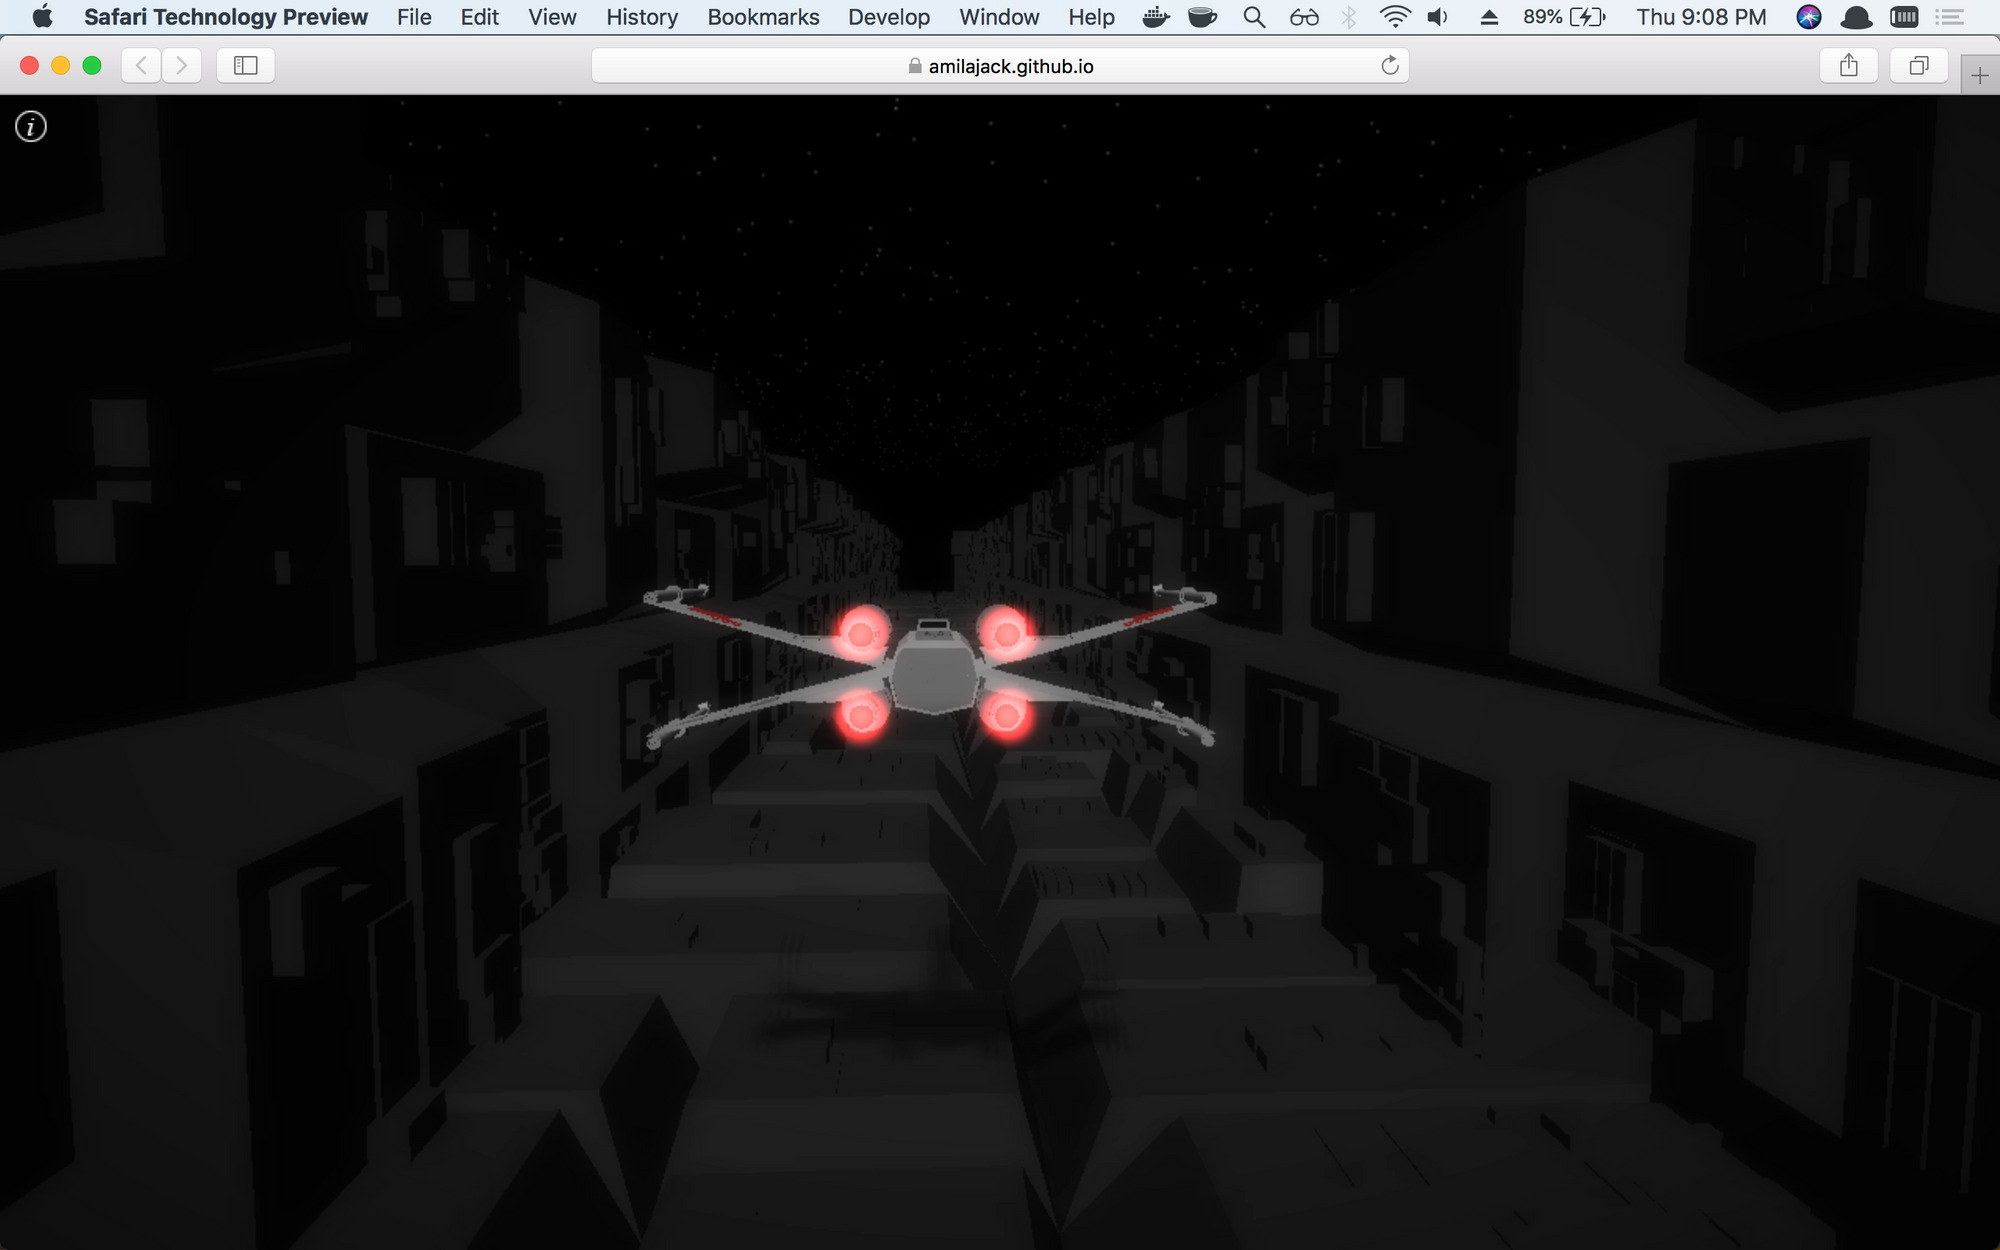 xwing - A Star Wars WebGL Game Built with Three.JS